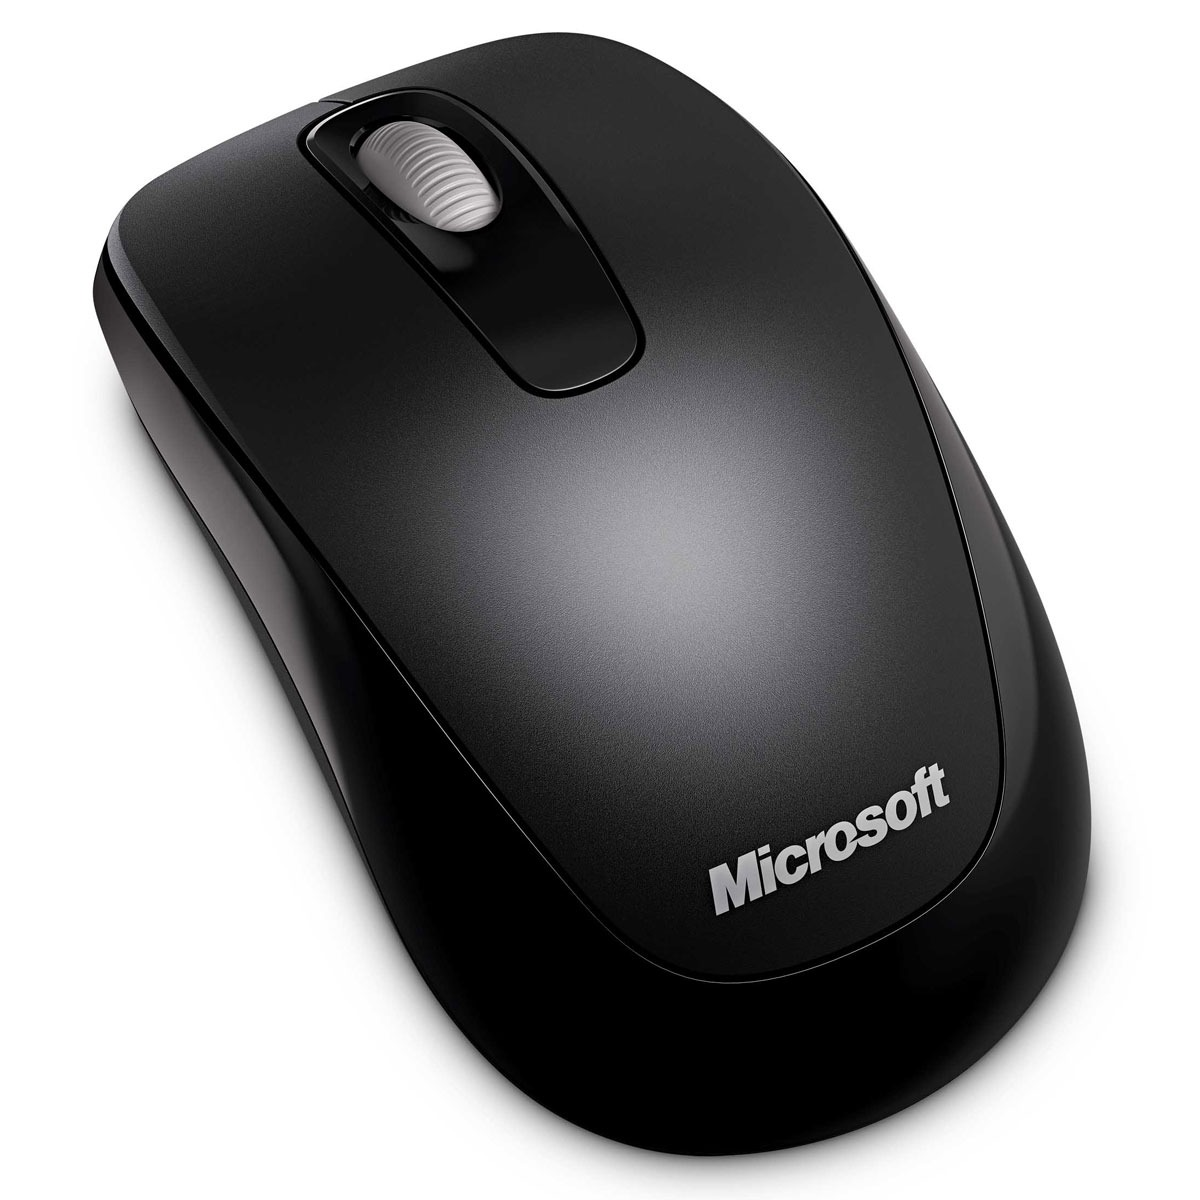 Souris PC Microsoft Wireless Mobile Mouse 1000 Microsoft Wireless Mobile Mouse 1000 - Souris sans fil (coloris noir)